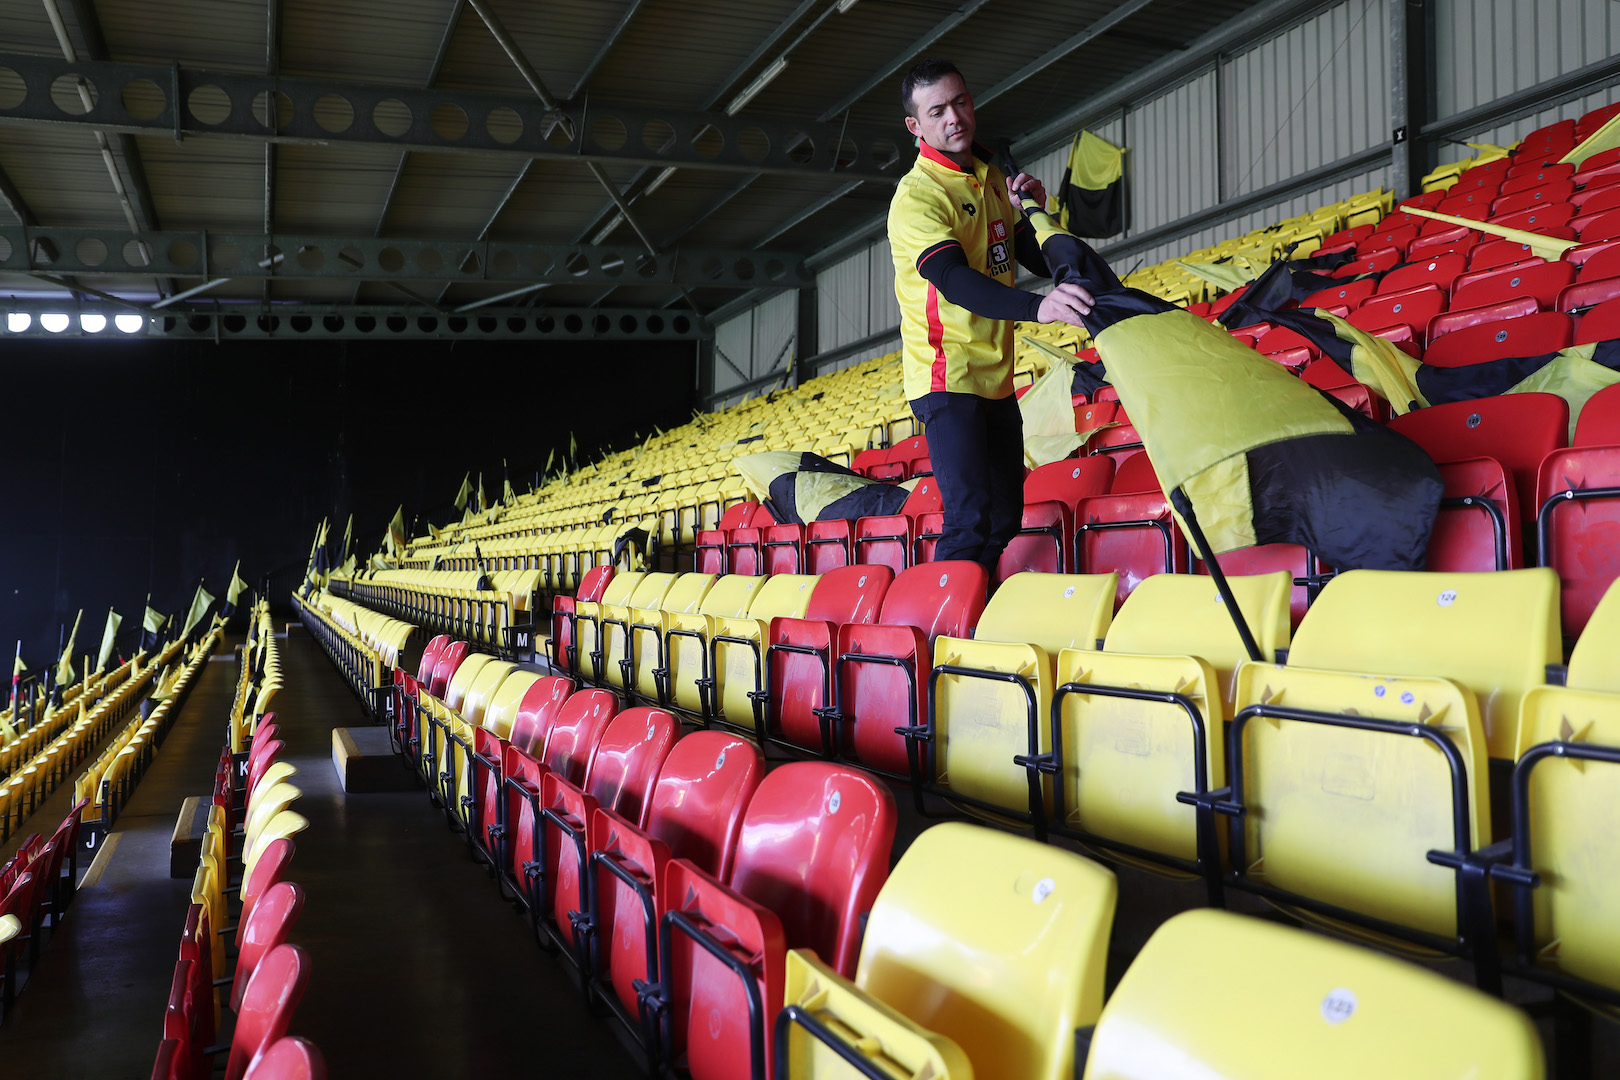 WATFORD, ENGLAND - APRIL 01: A Watford fan prepares a flag prior to the Premier League match between Watford and Sunderland at Vicarage Road on April 1, 2017 in Watford, England. (Photo by Christopher Lee/Getty Images)